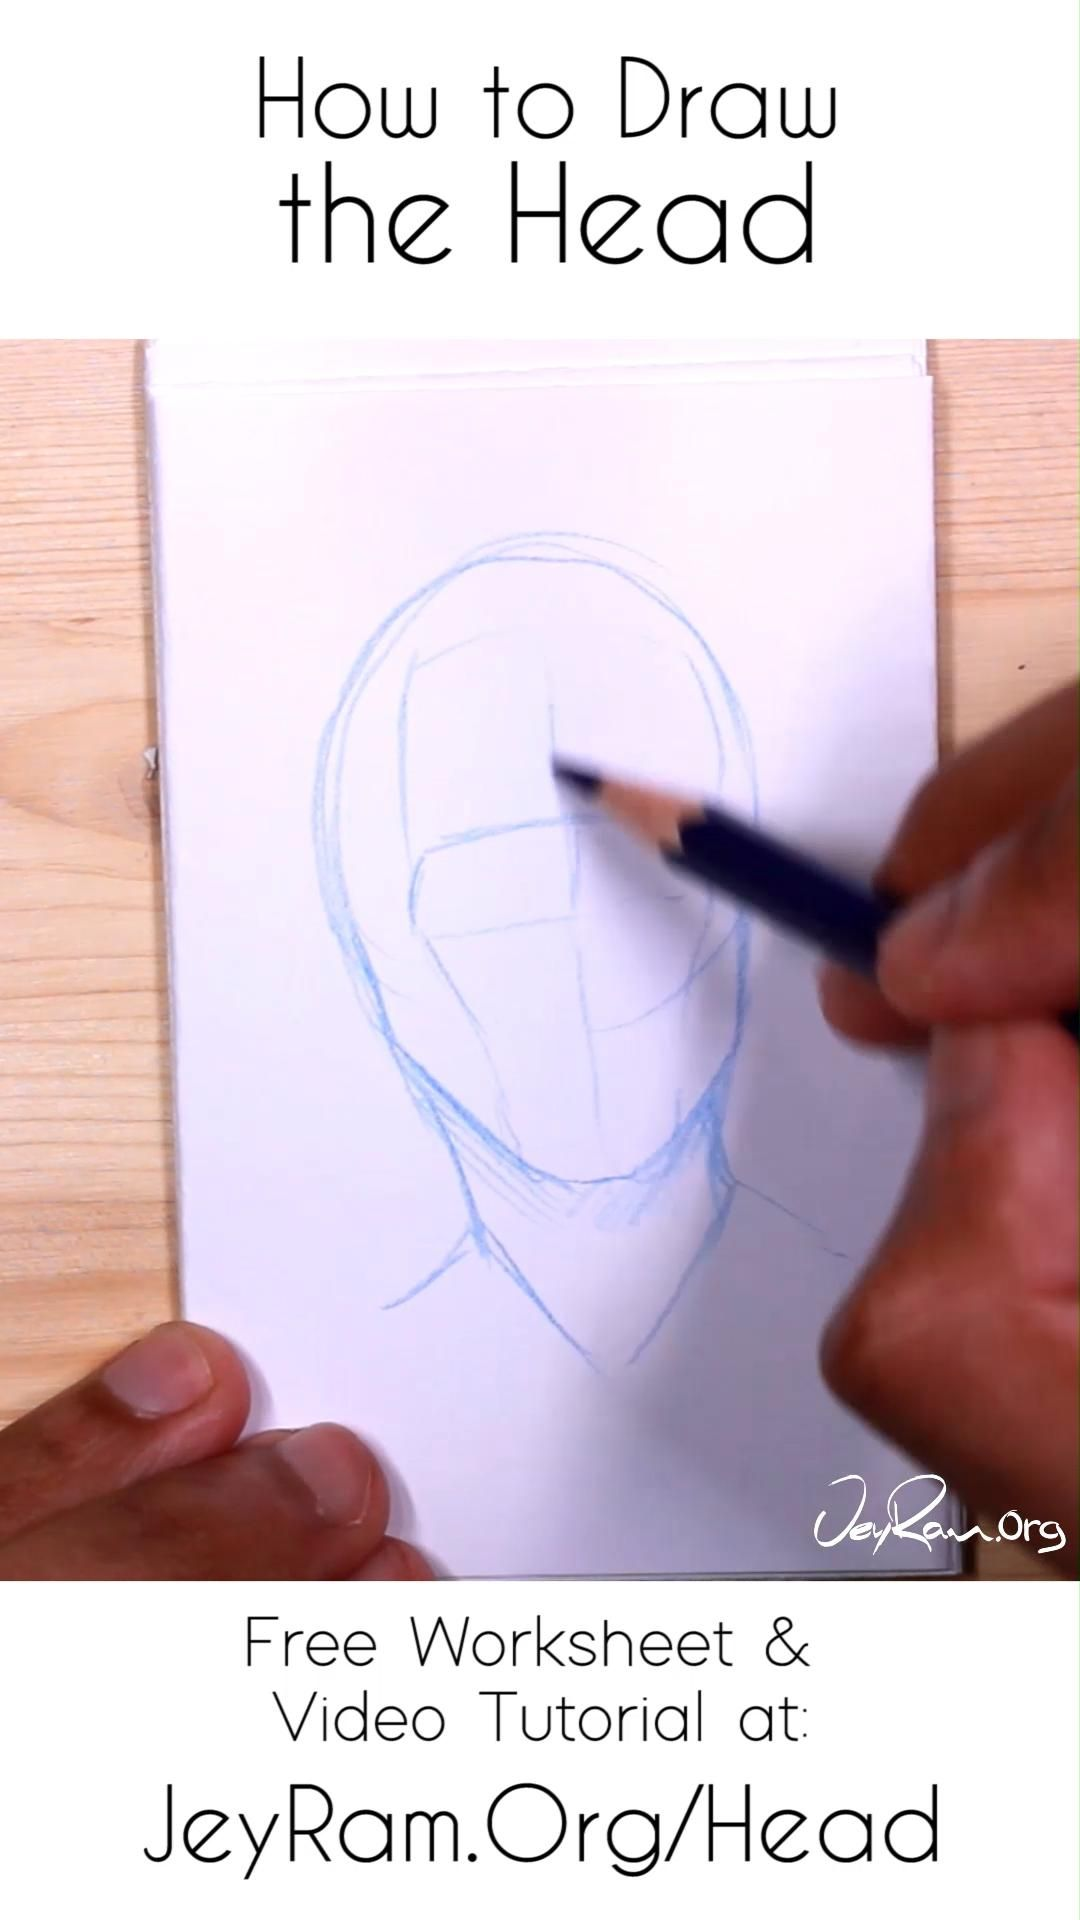 How To Draw The Head From Any Angle Free Worksheet